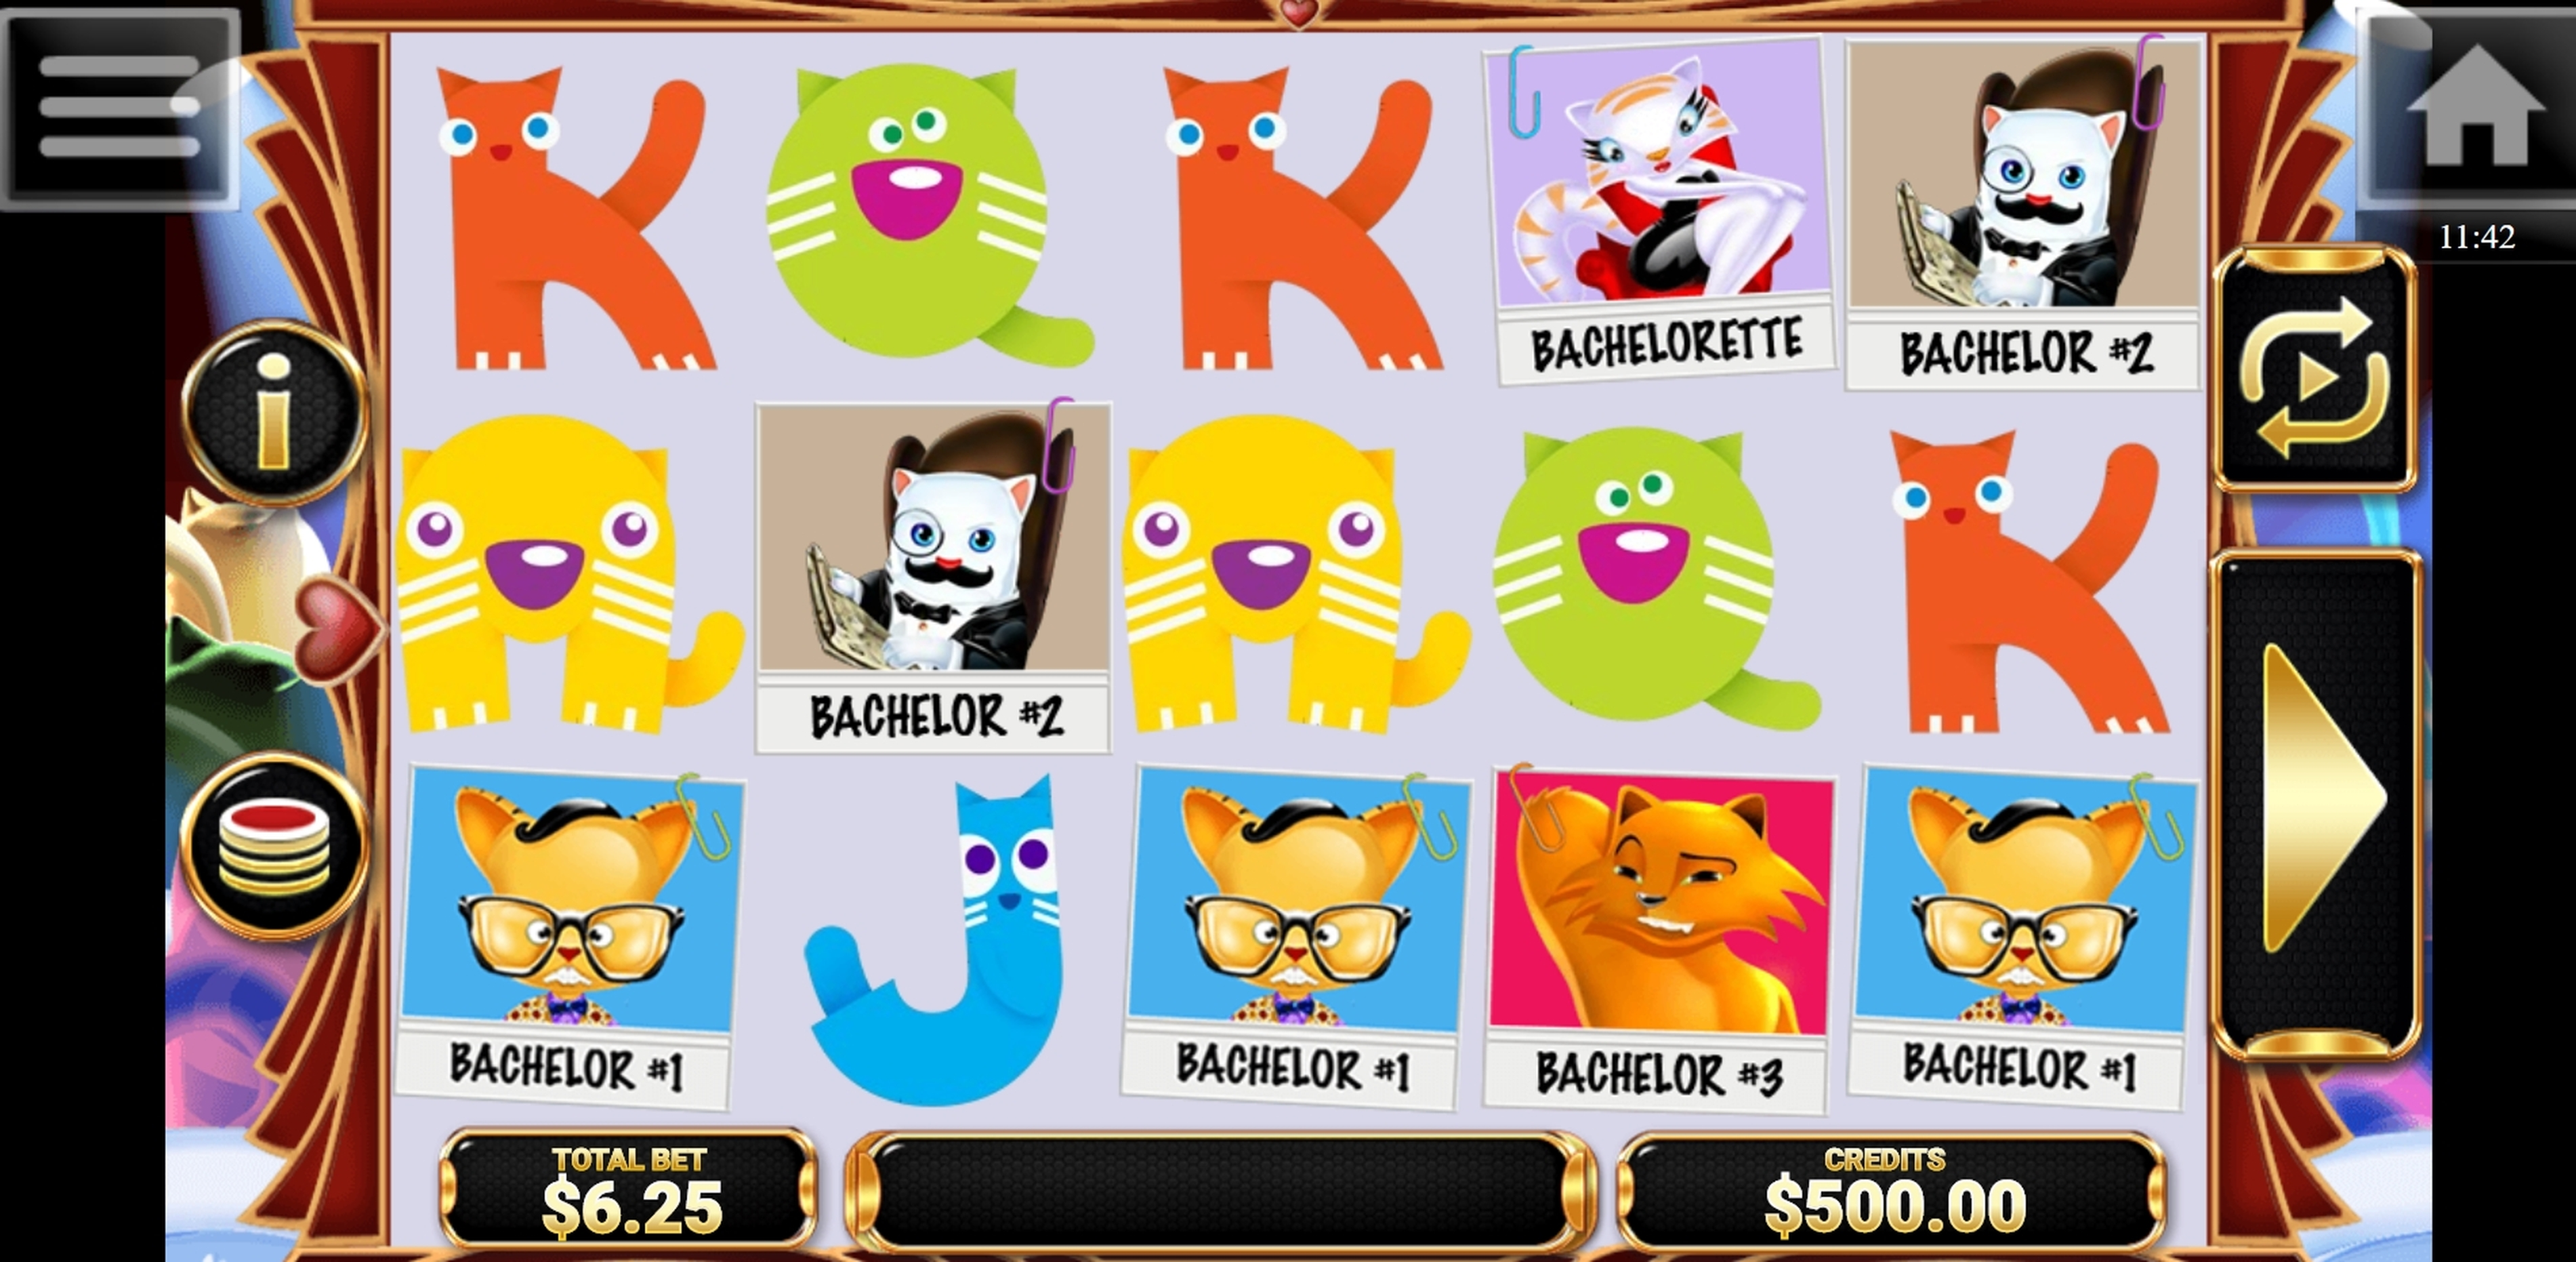 Reels in The Purrfect Match Slot Game by Betconstruct